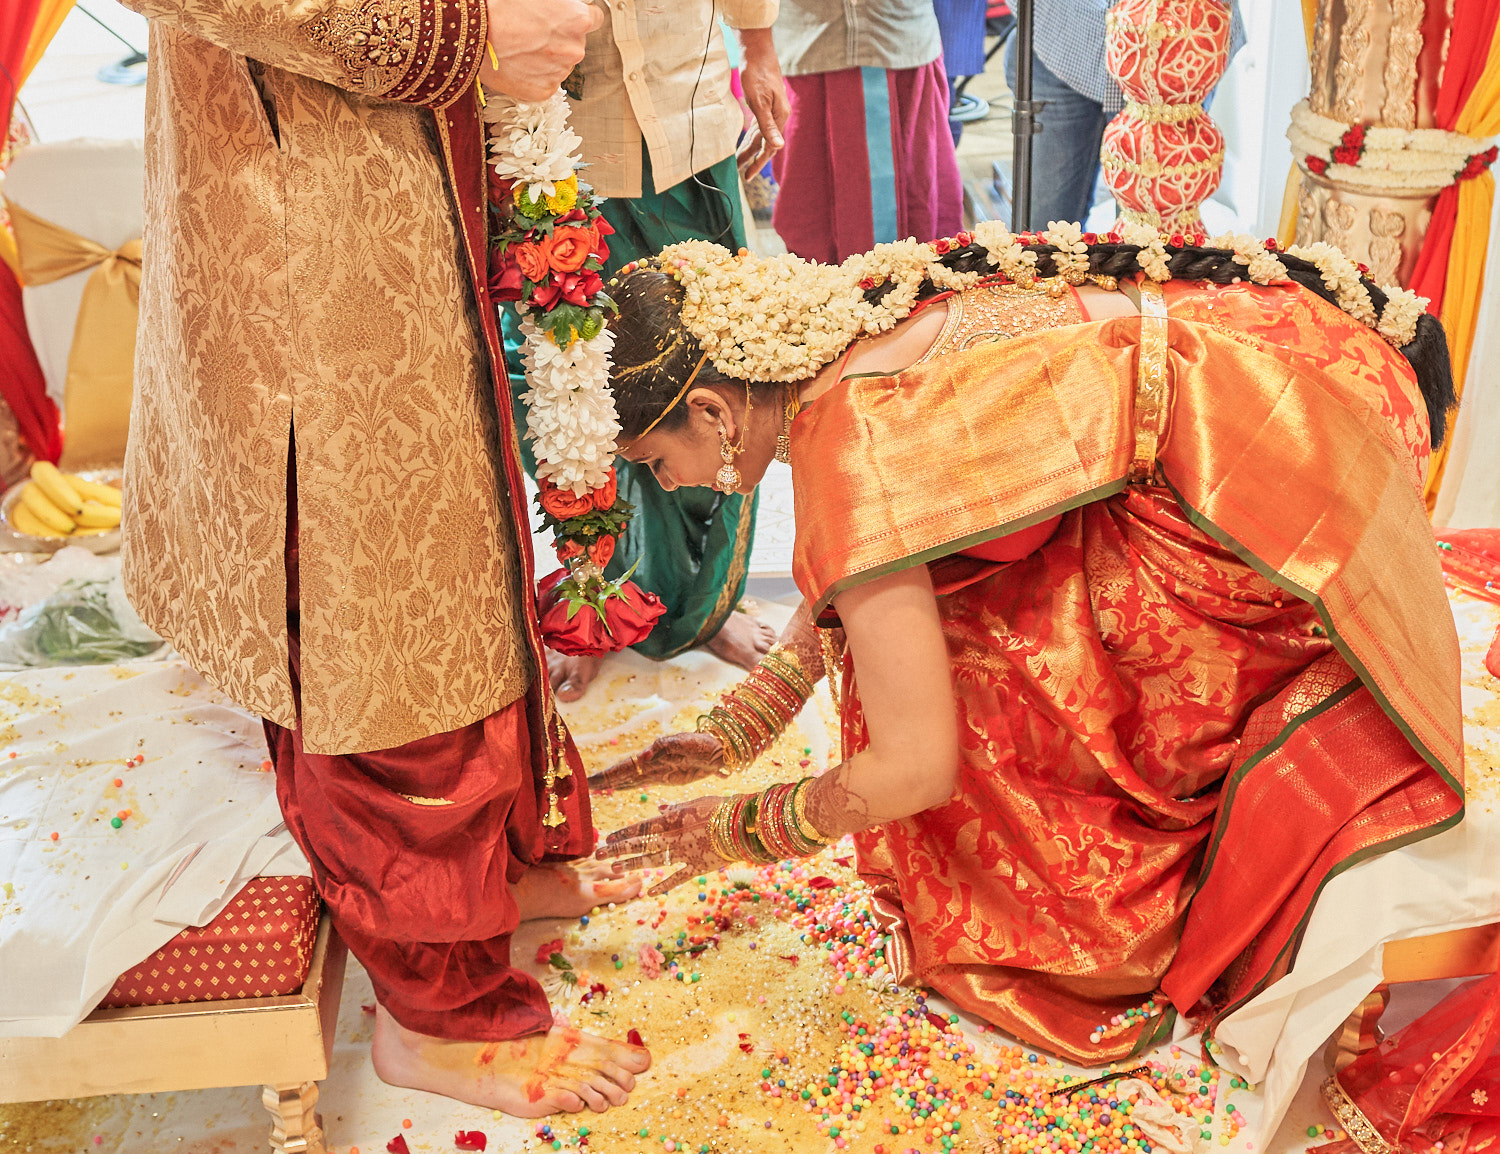 Bride touching her groom's feet - a sign of love and respect.